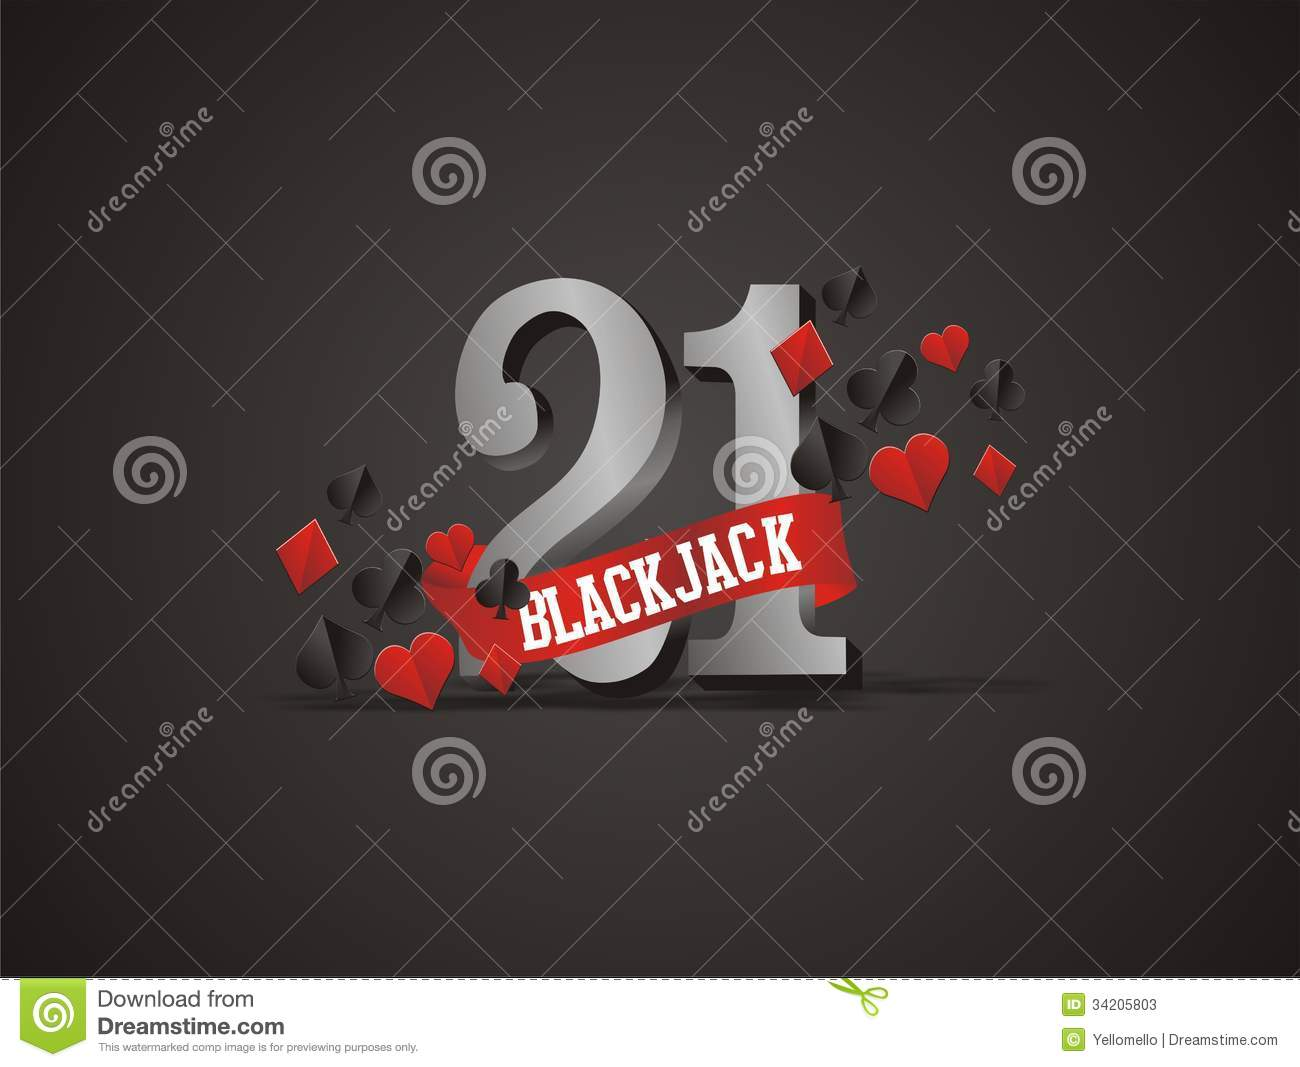 21 blackjack poster backdrop with playing card symbols stock 21 blackjack poster backdrop with playing card symbols biocorpaavc